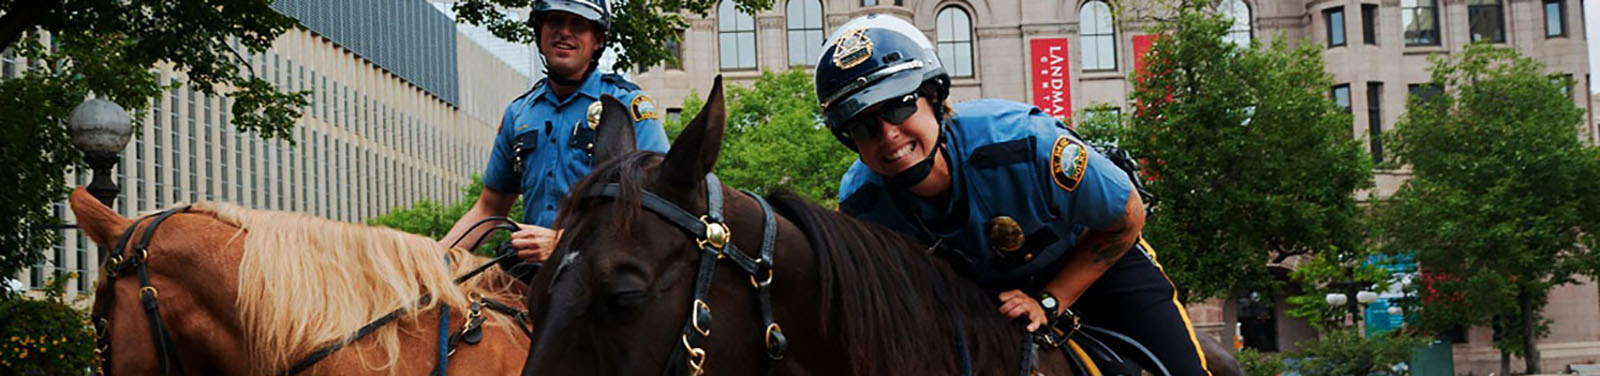 Saint Paul Police Mounted Patrol